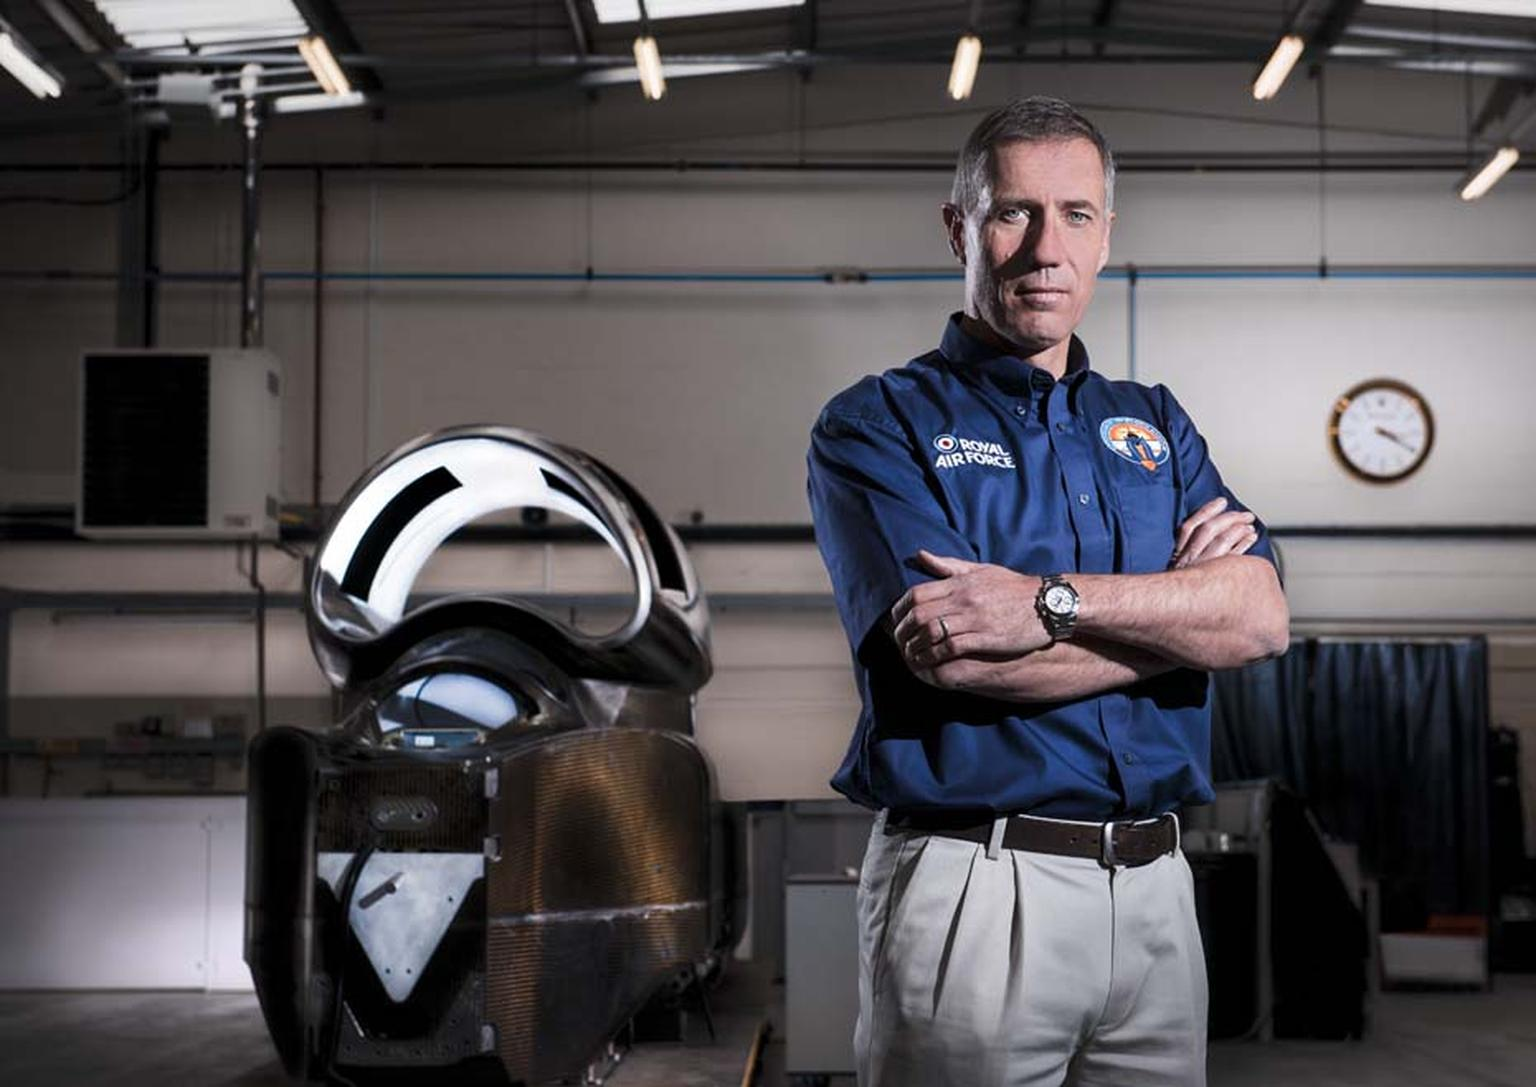 Wearing his Rolex watch, Andy Green OBE will be at the helm of the Bloodhound SSC supersonic car for the land speed record attempt in South Africa in 2016.